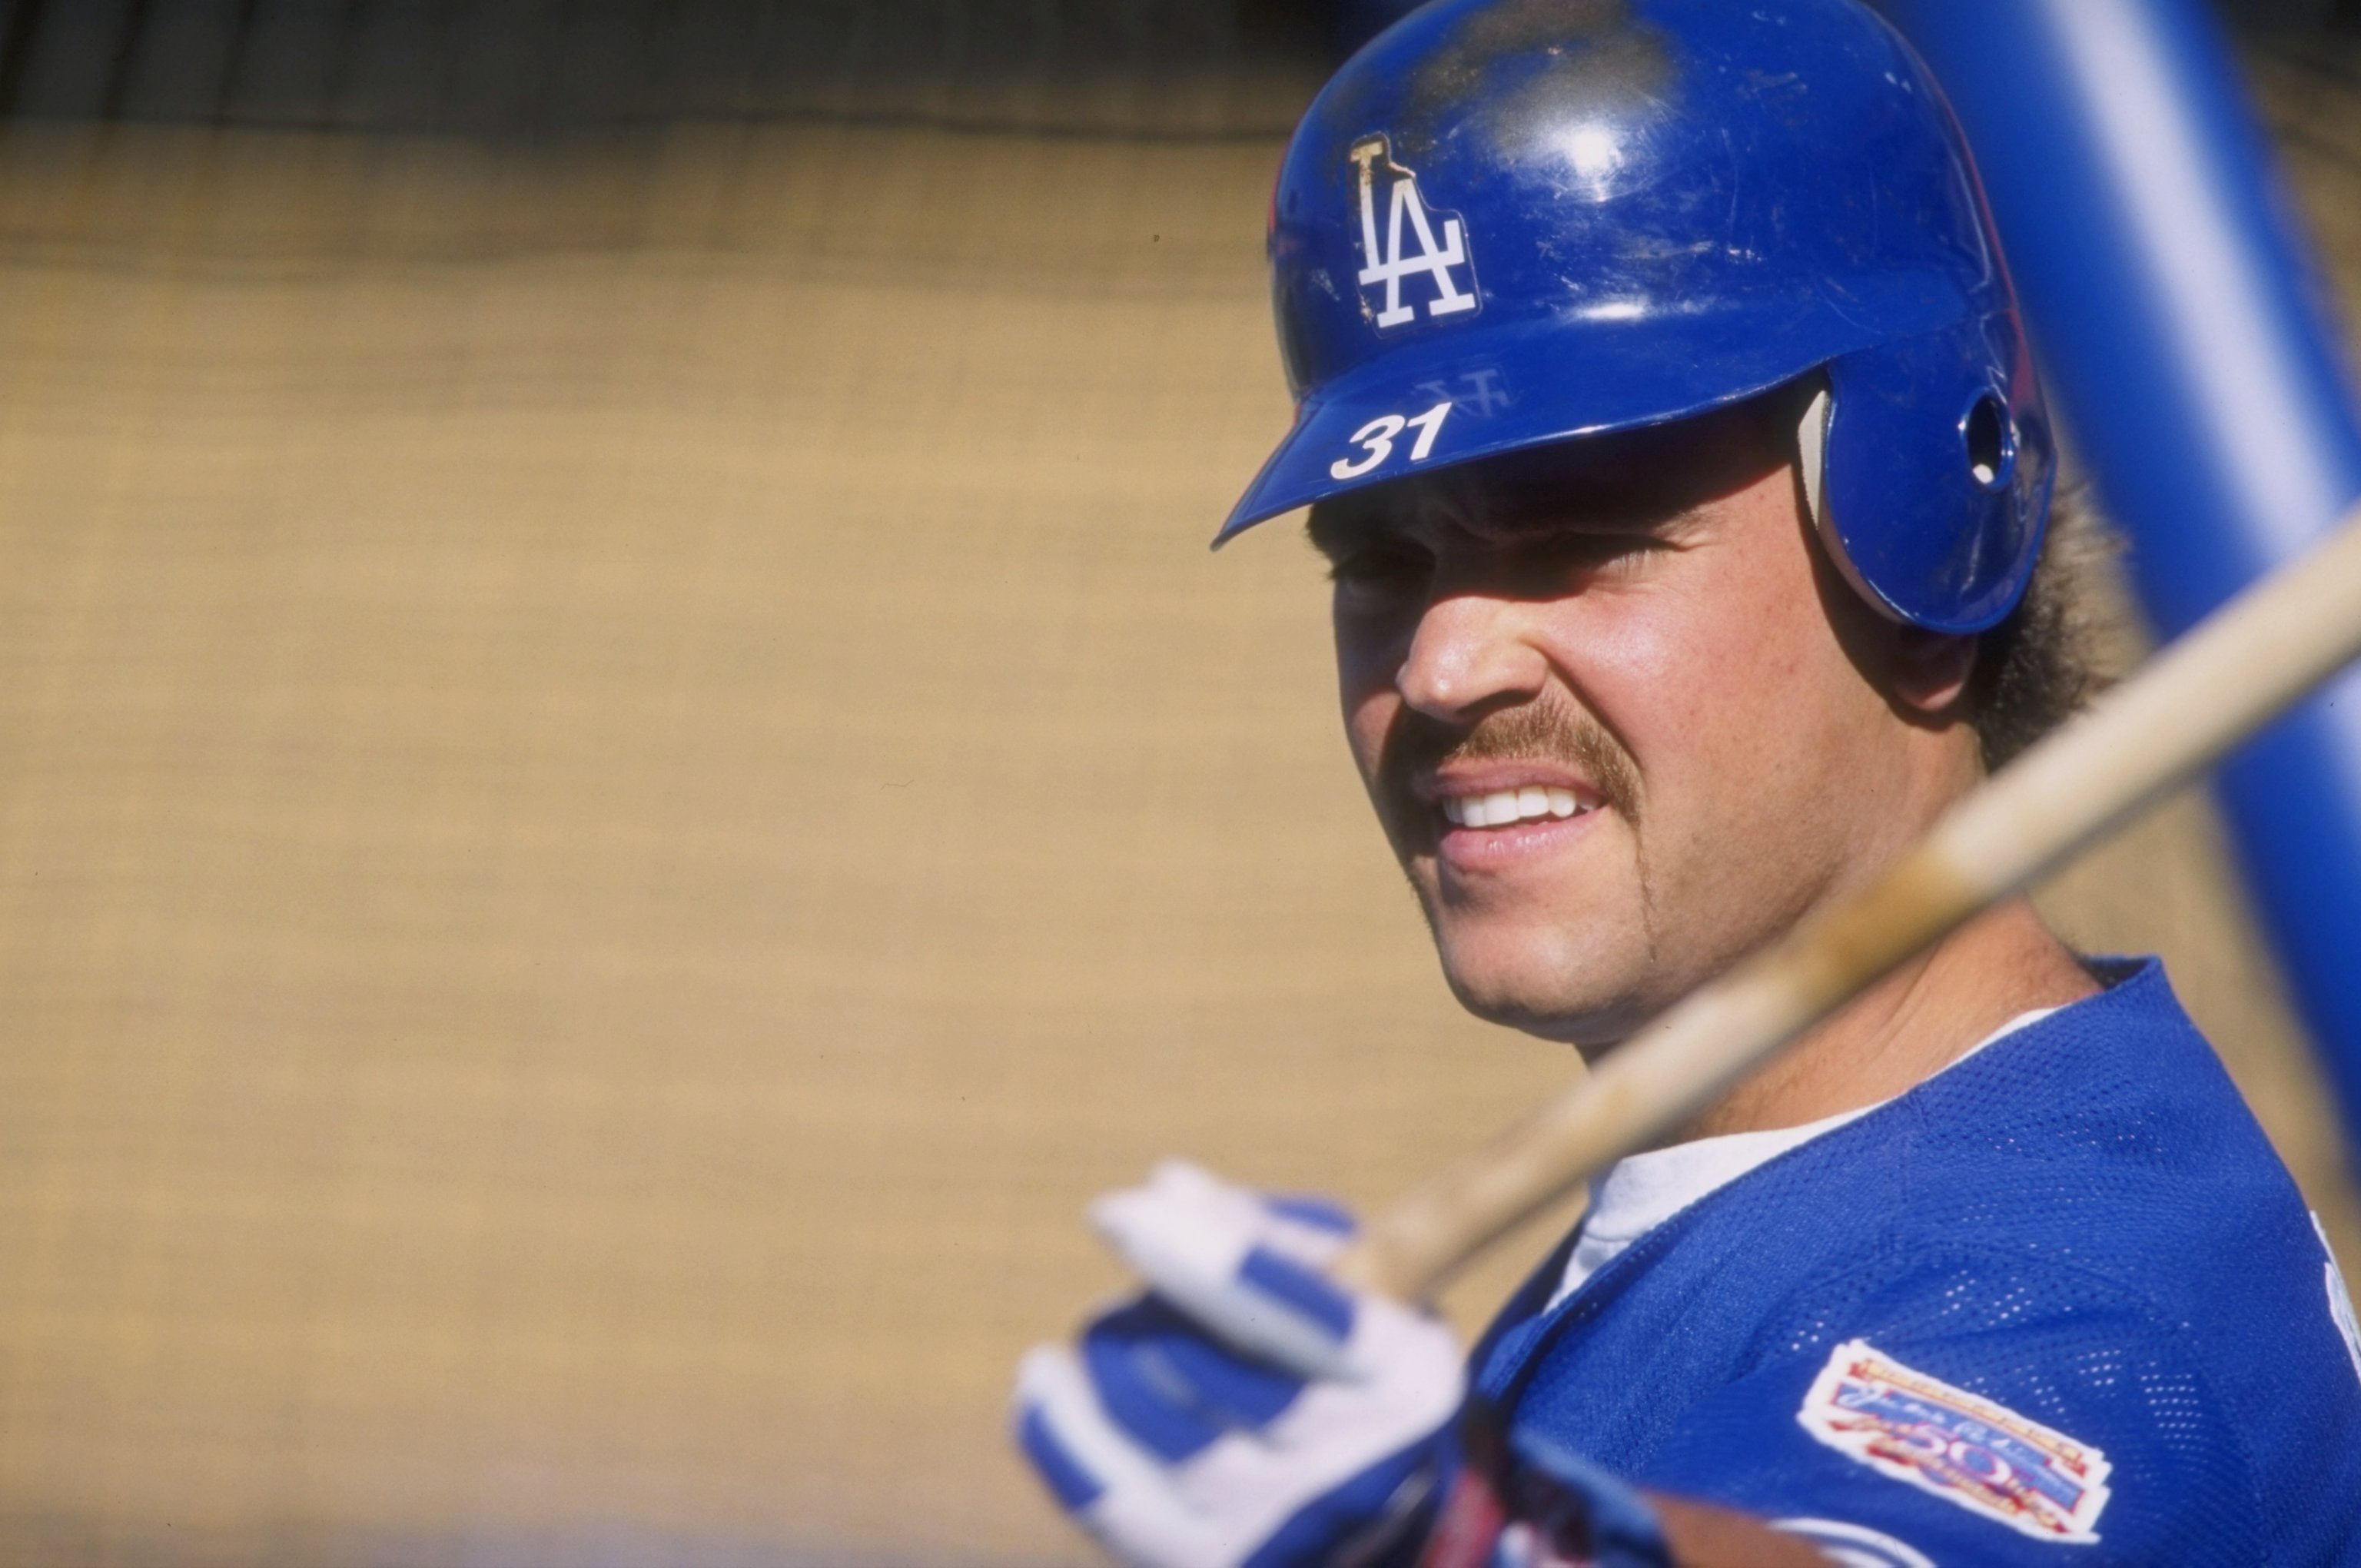 Mike Piazza in 1997 (credit: Todd Warshaw/Allsport/Getty Images)